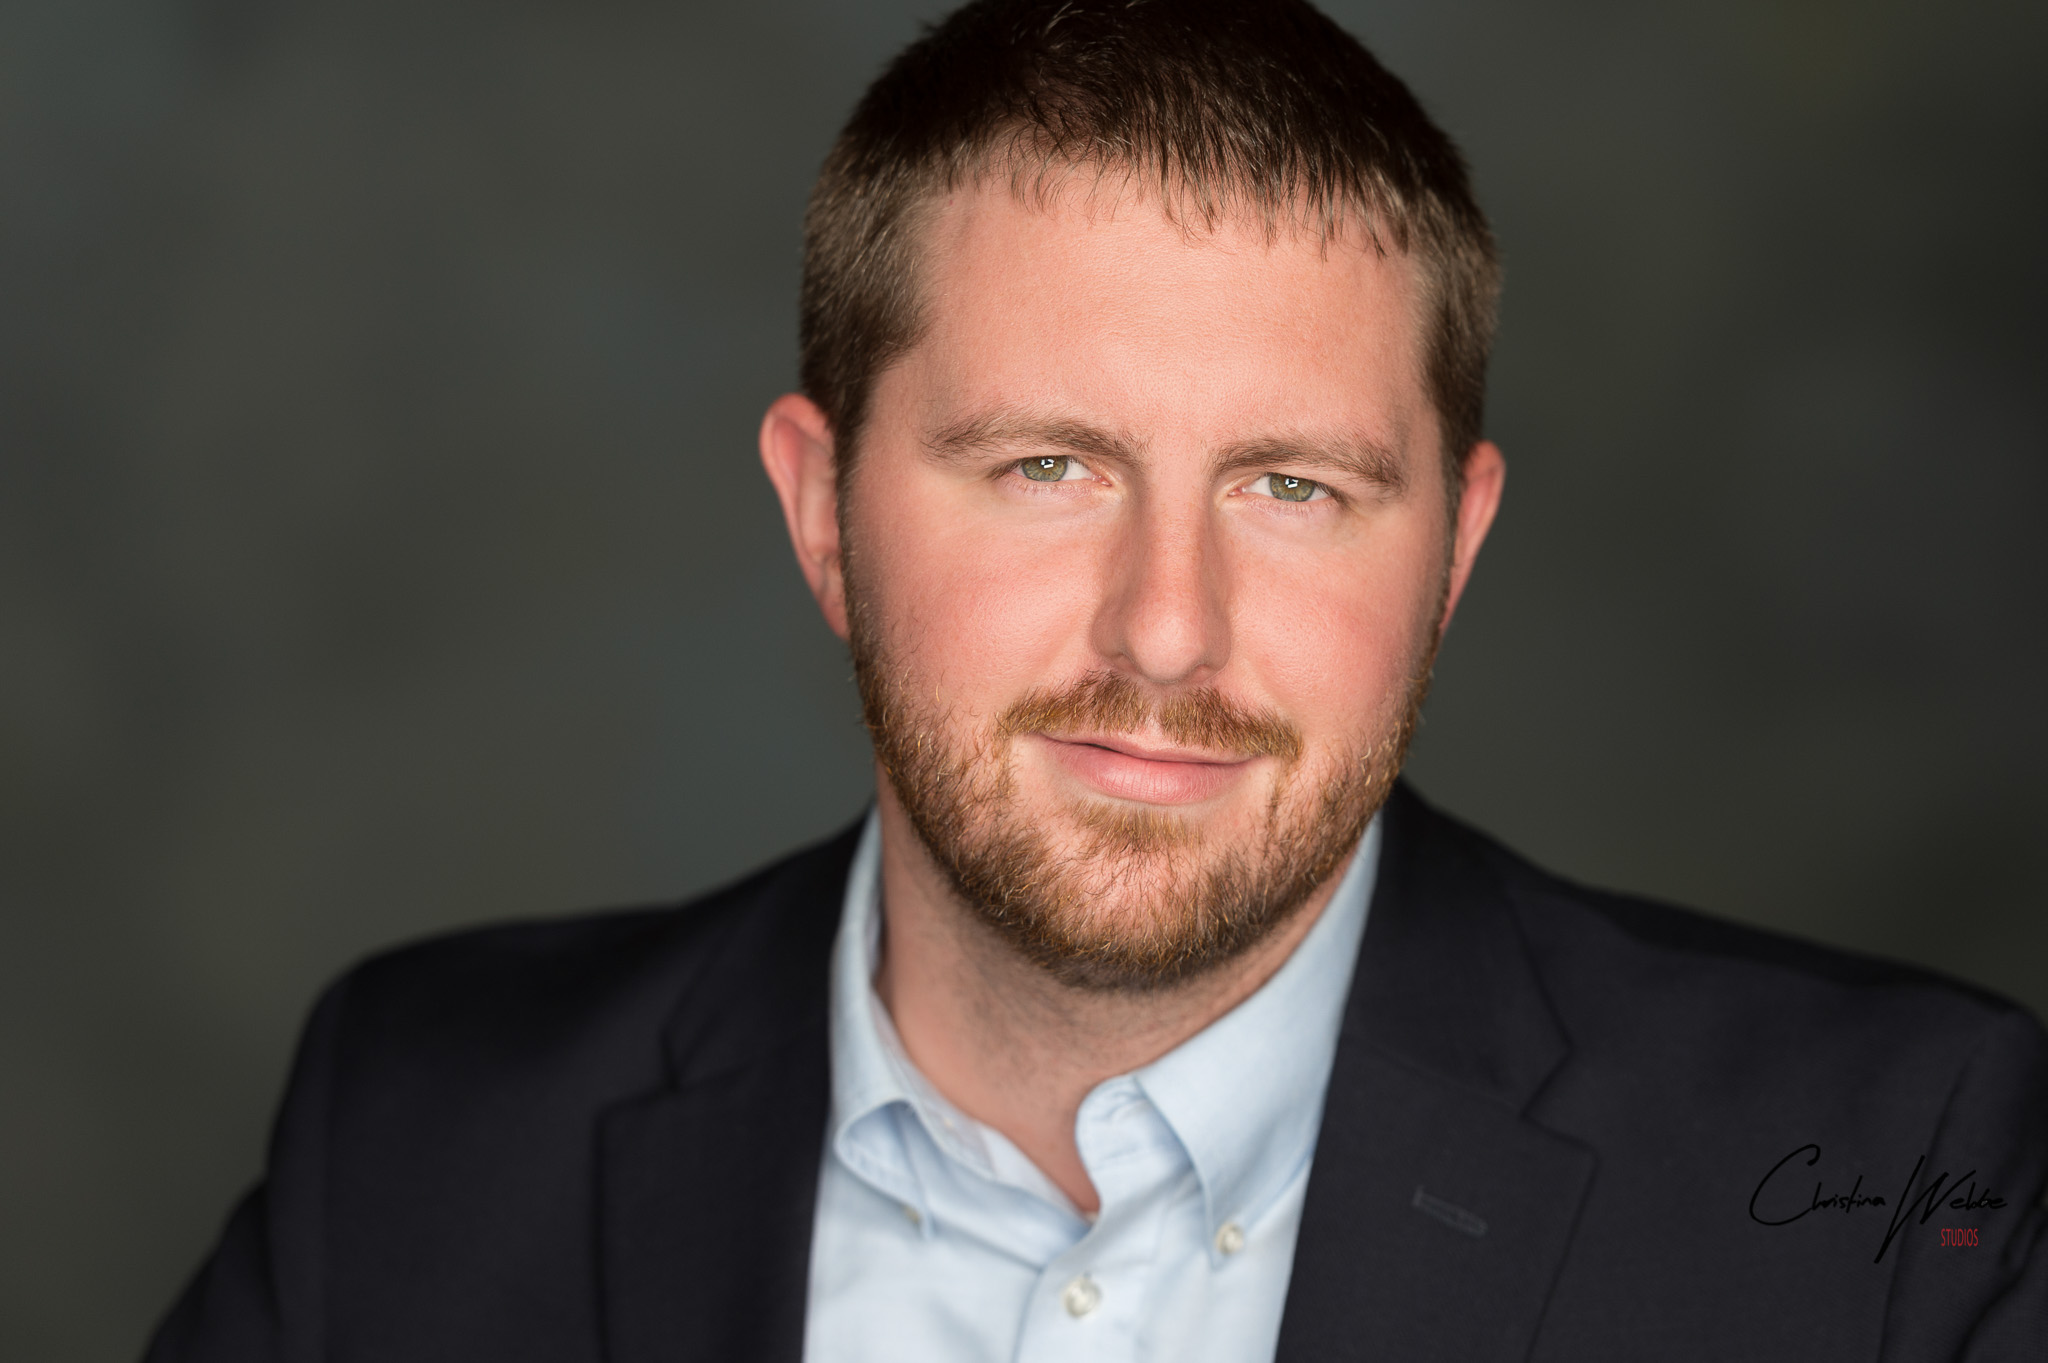 Orange County man in a suit posing for a headshot